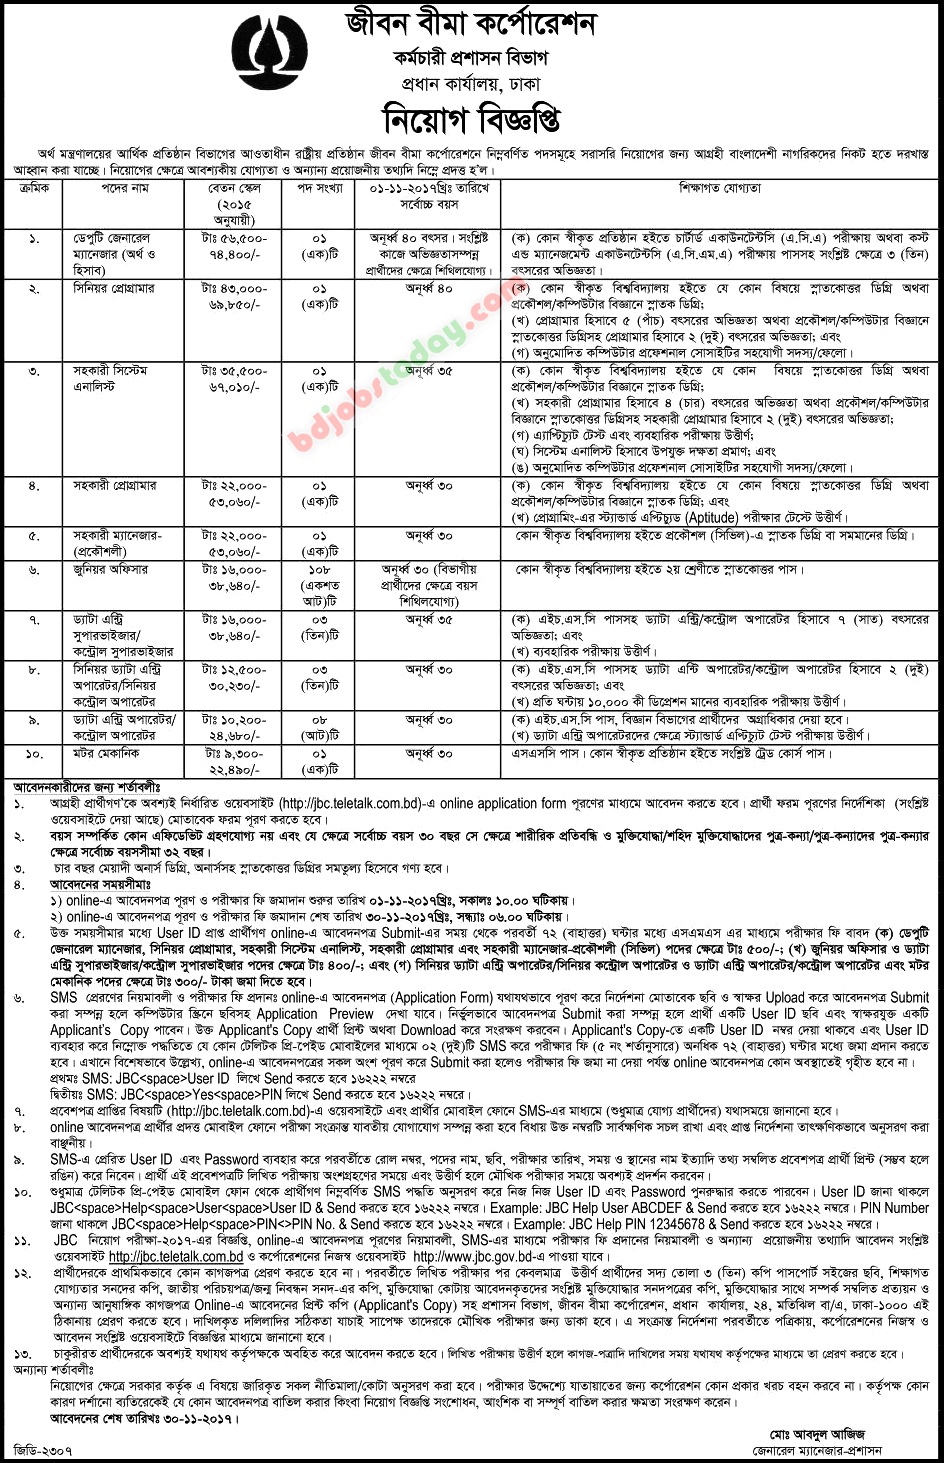 Jibon Bima Corporation jobs